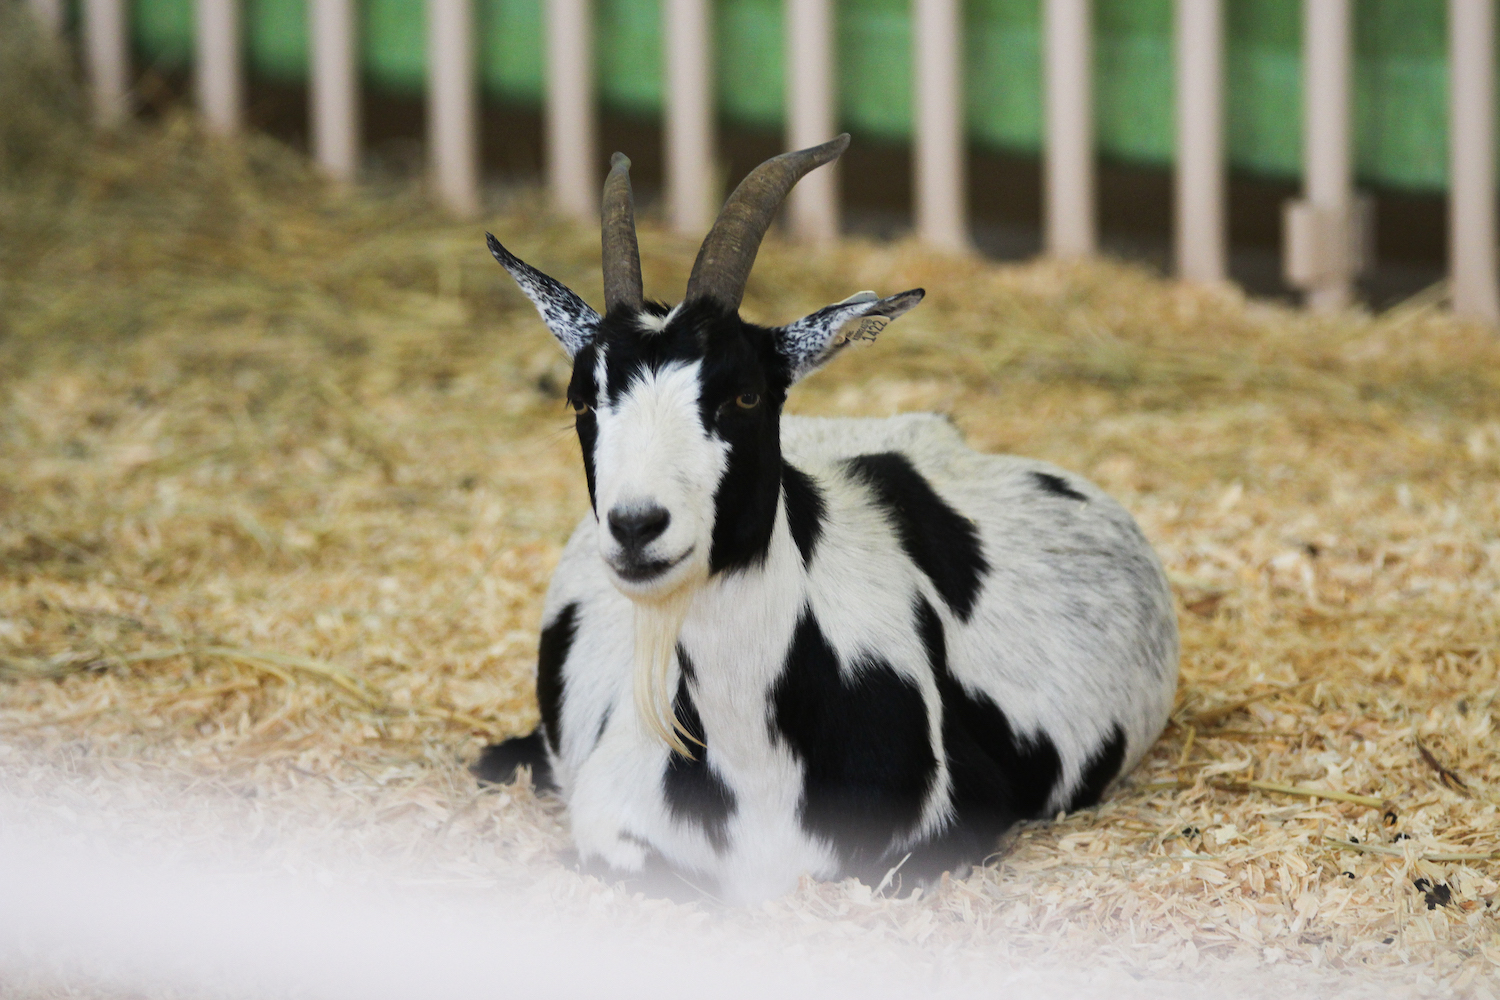 Goats+were+a+feature+at+the+petting+zoo+with+multiple+goat+enclosures.+